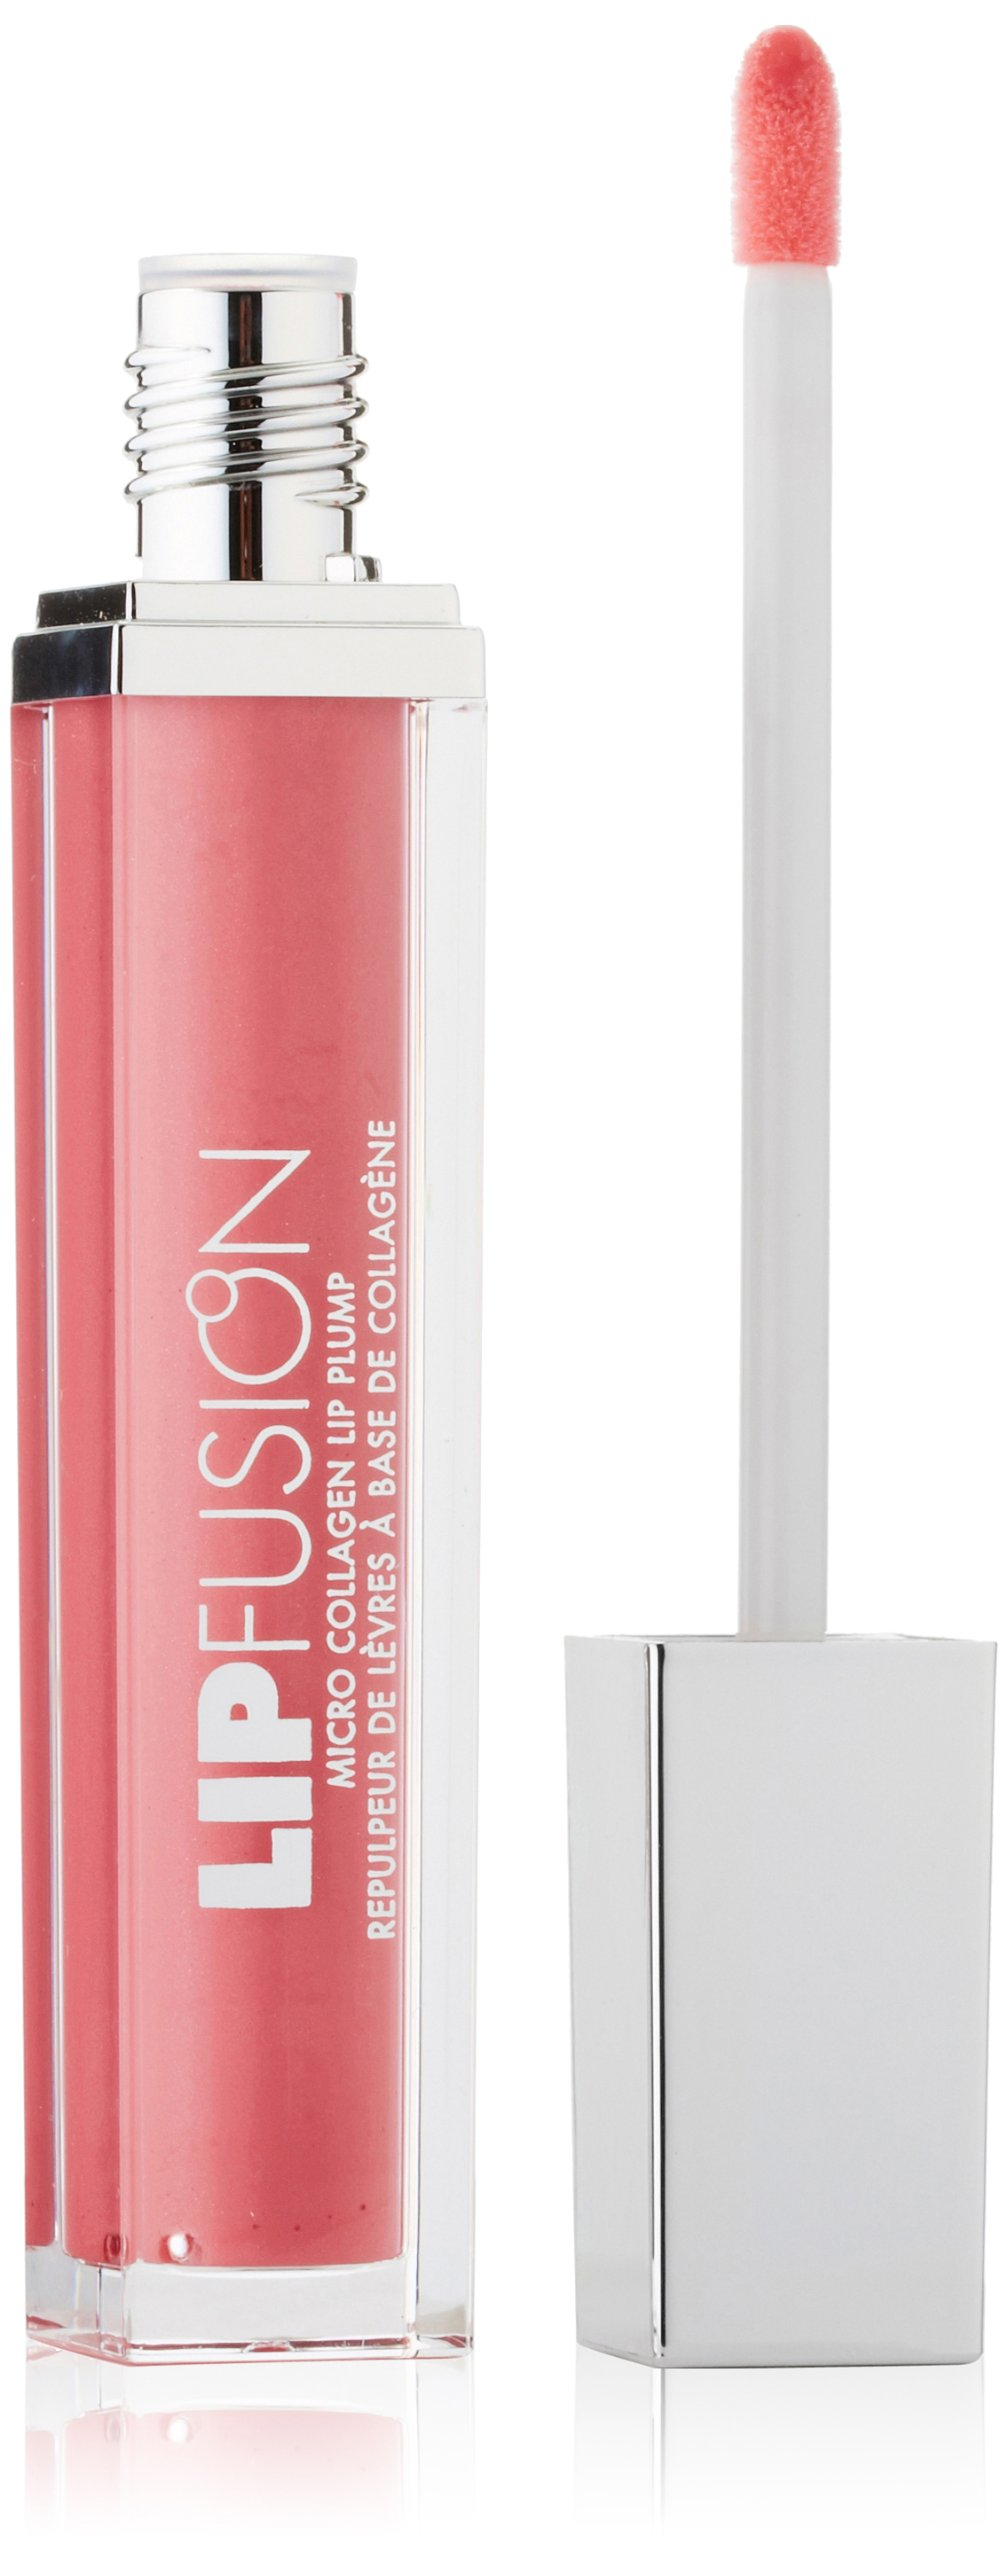 FusionBeauty LipFusion Micro-Injected Collagen Lip Plump Color Shine, Blush